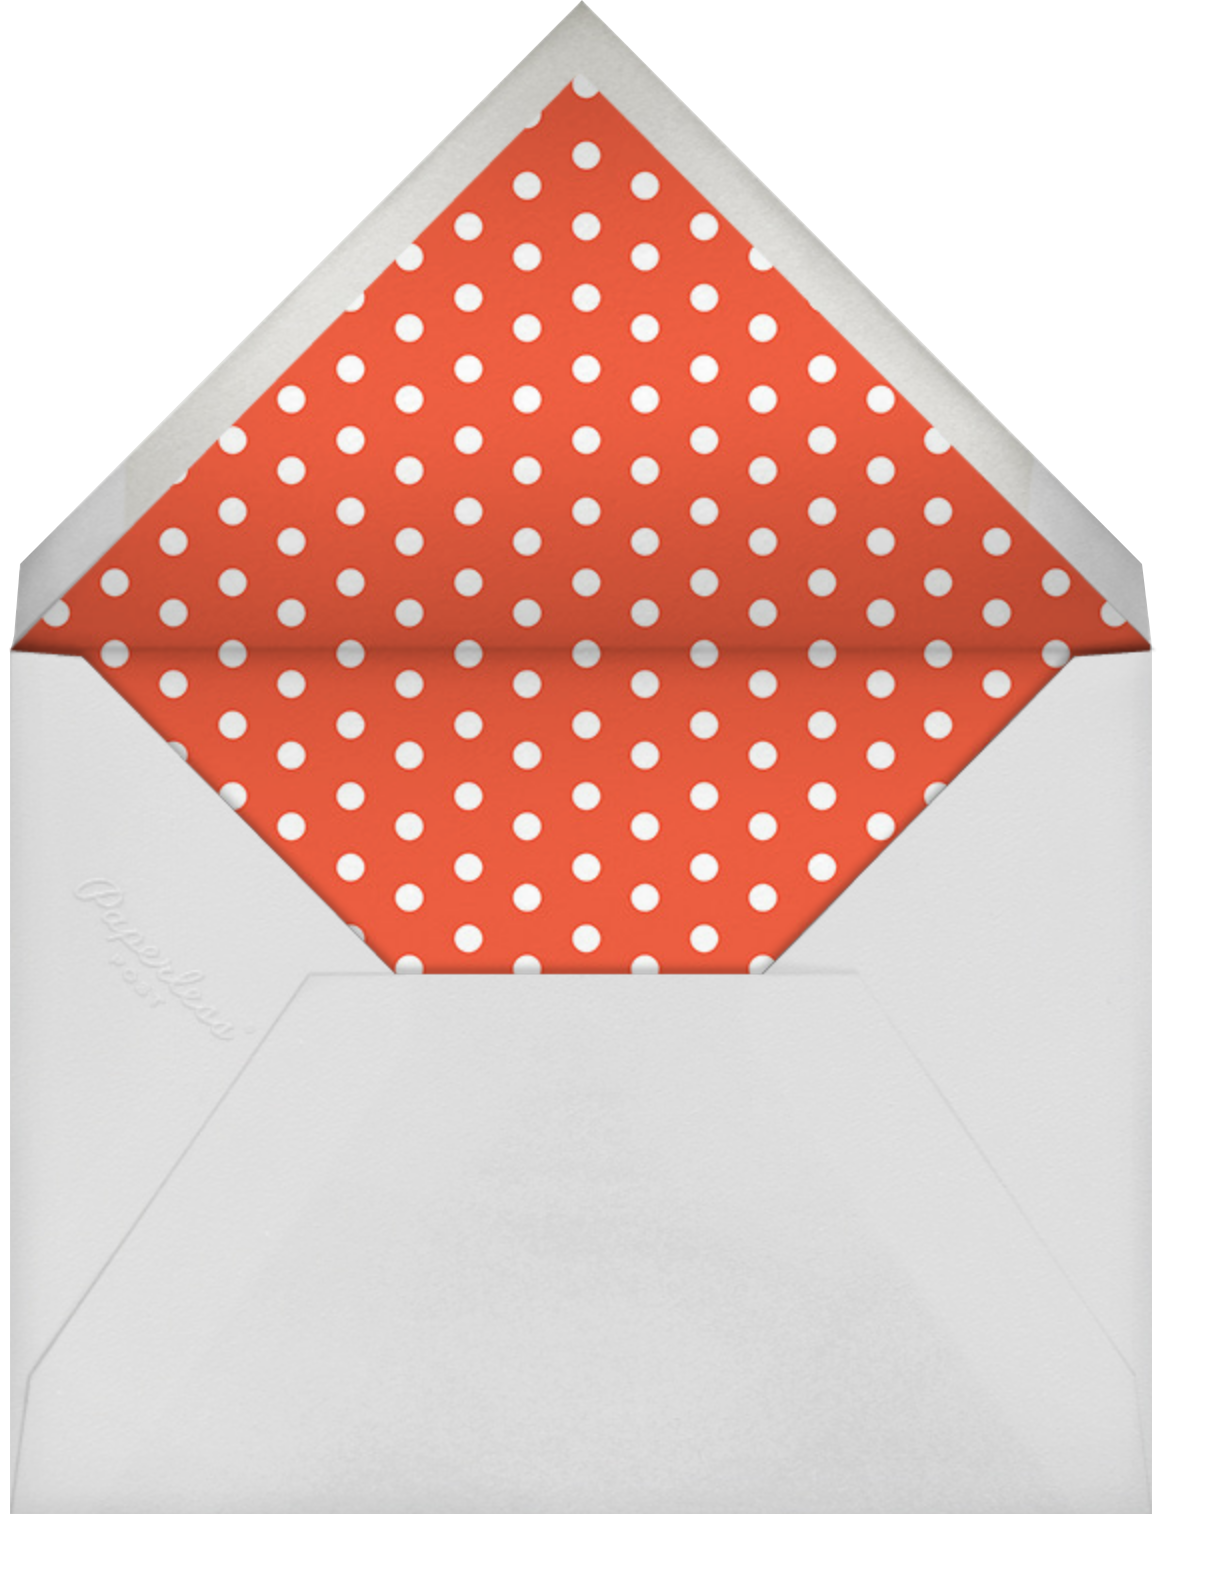 Blooming Heart Valentine's Day - Rifle Paper Co. - Valentine's Day - envelope back